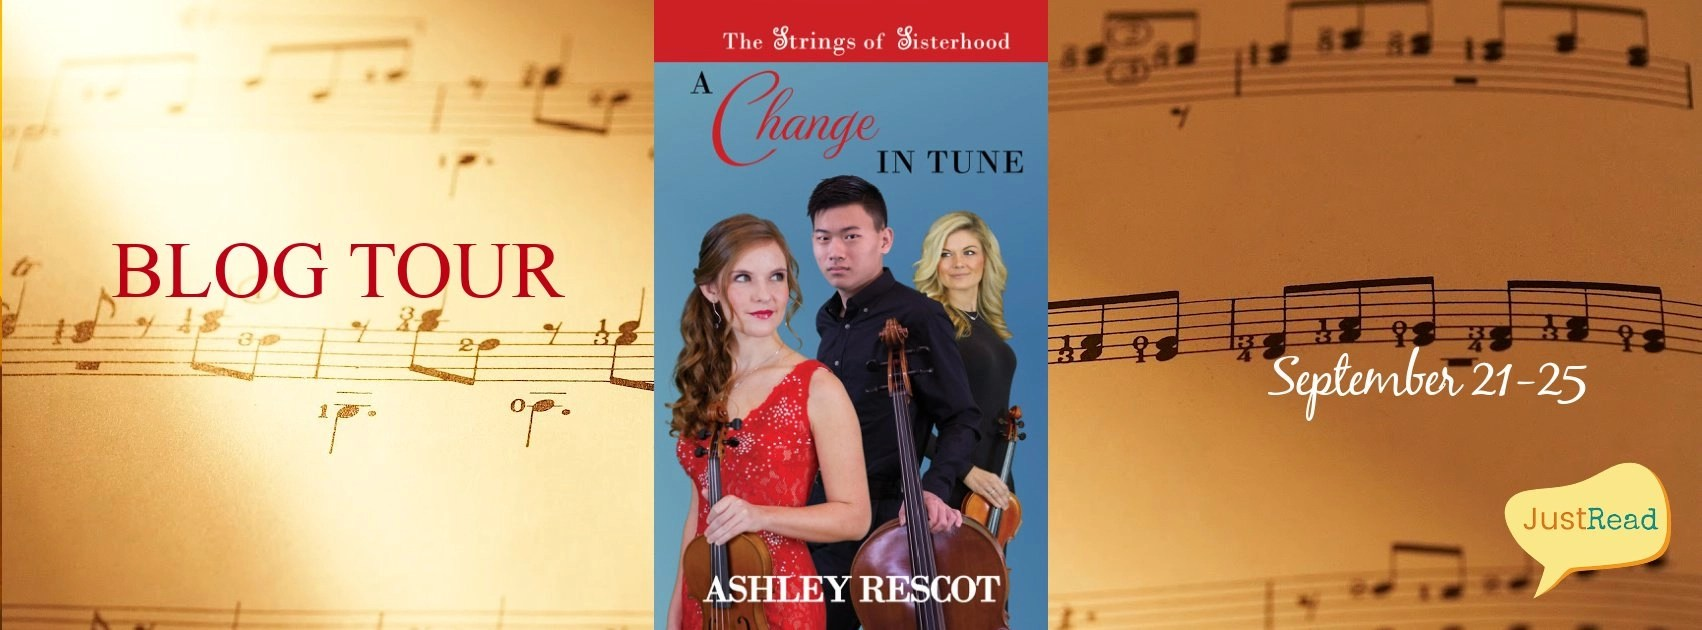 Welcome to the A Change in Tune Blog Tour & Giveaway!